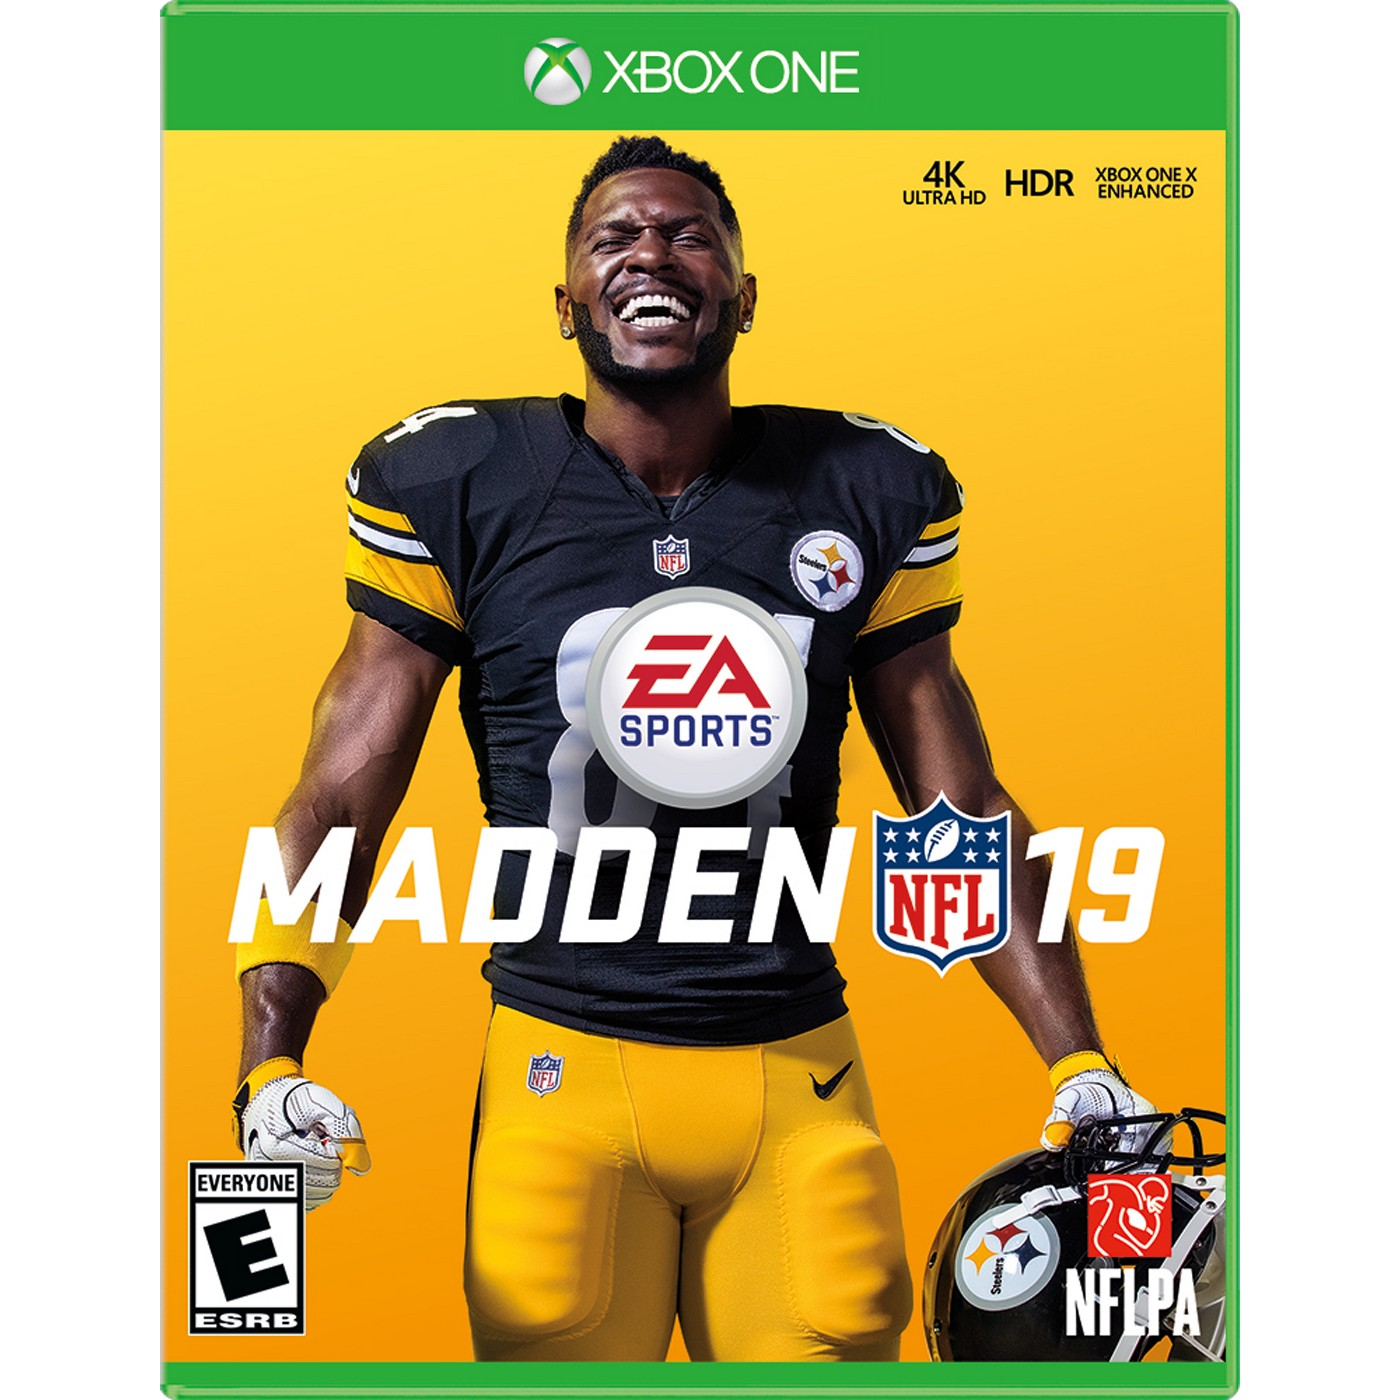 Save 37% on Madden NFL 19 - Xbox One